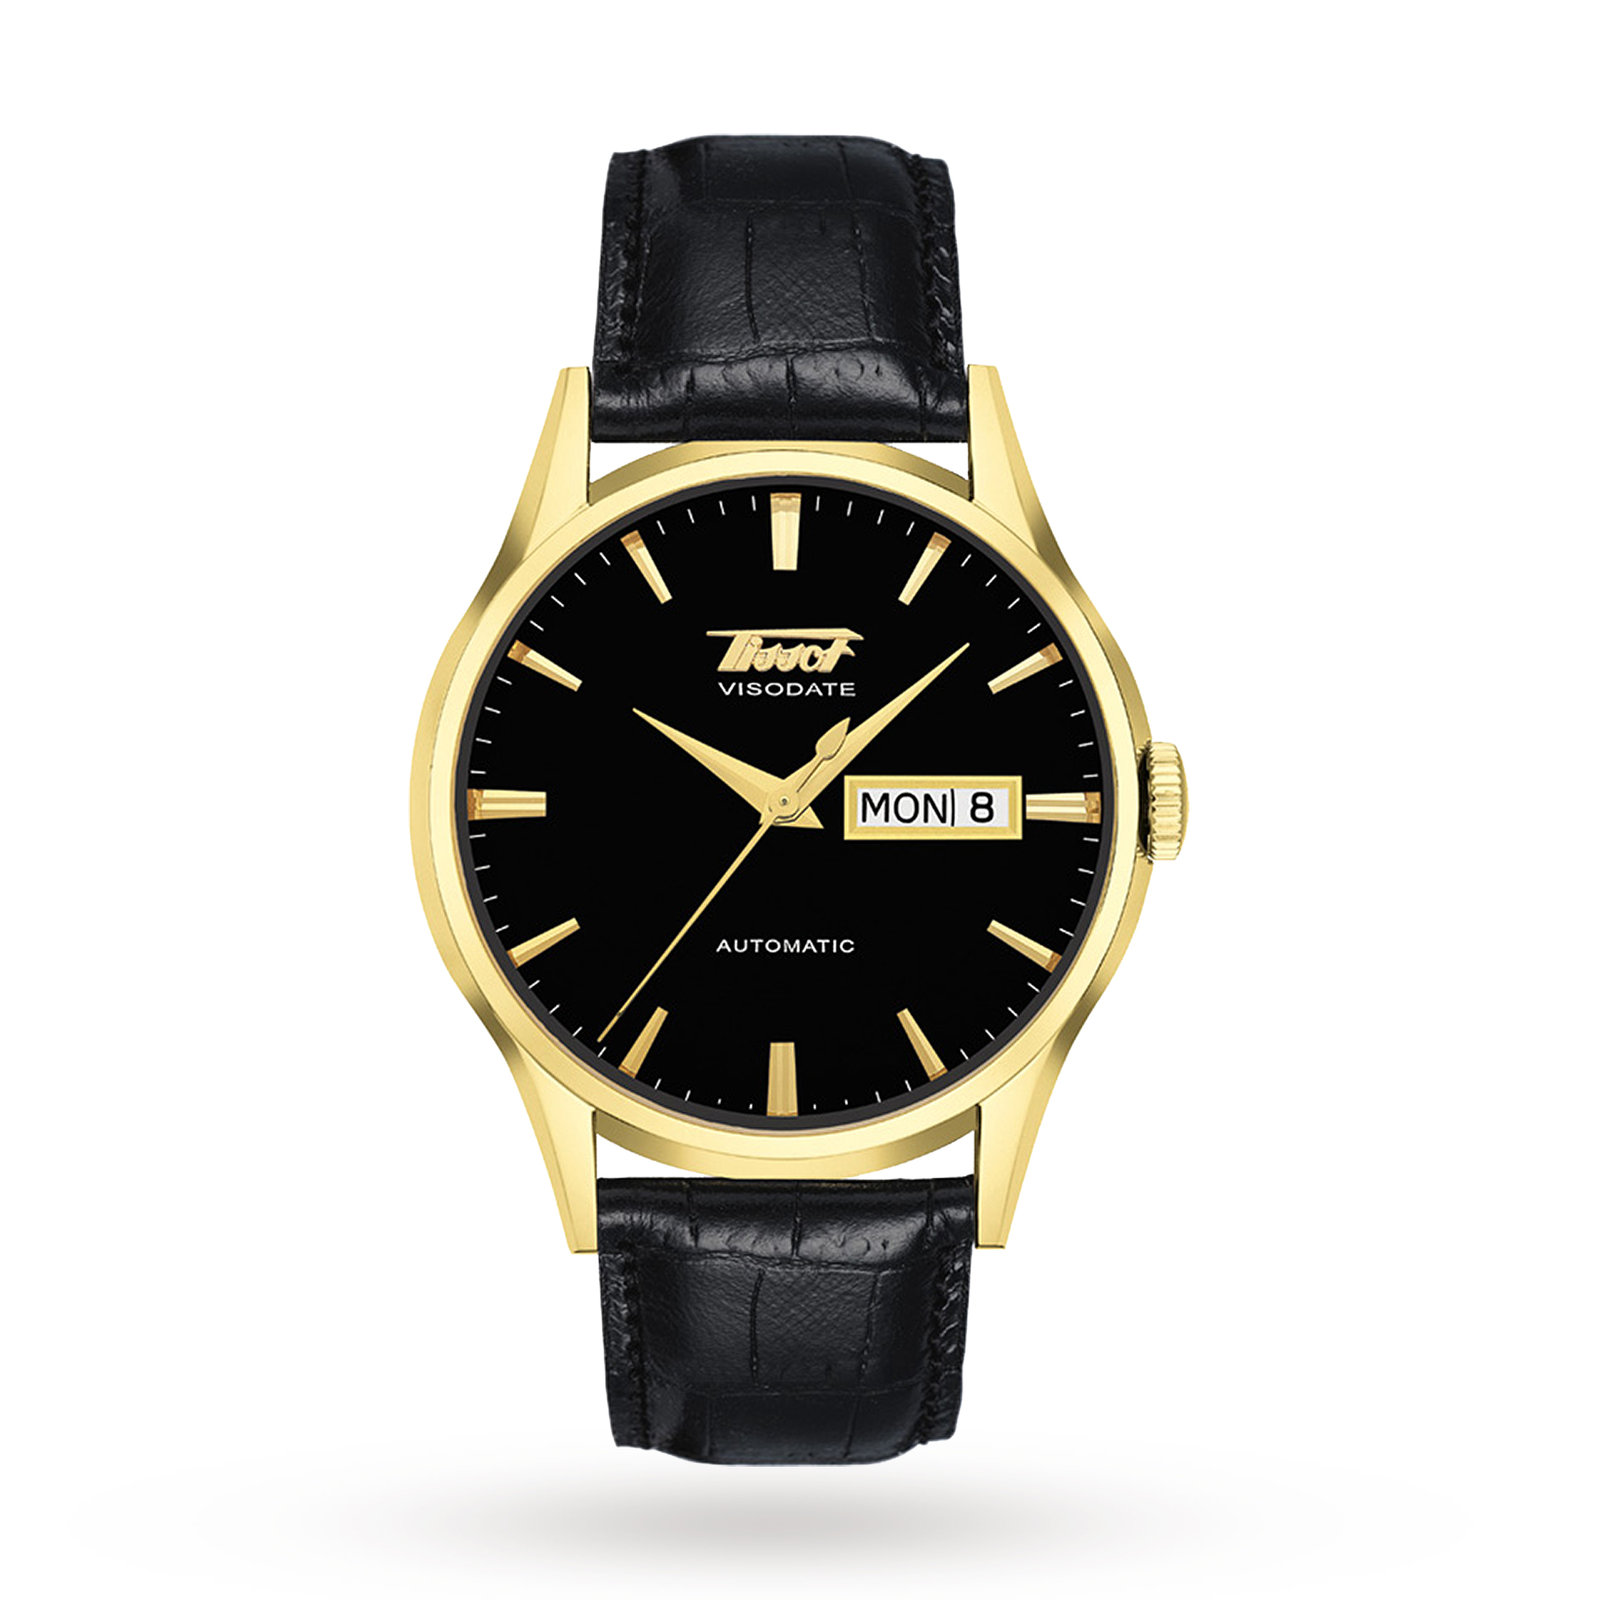 Tissot Men's Visodate Automatic Watch